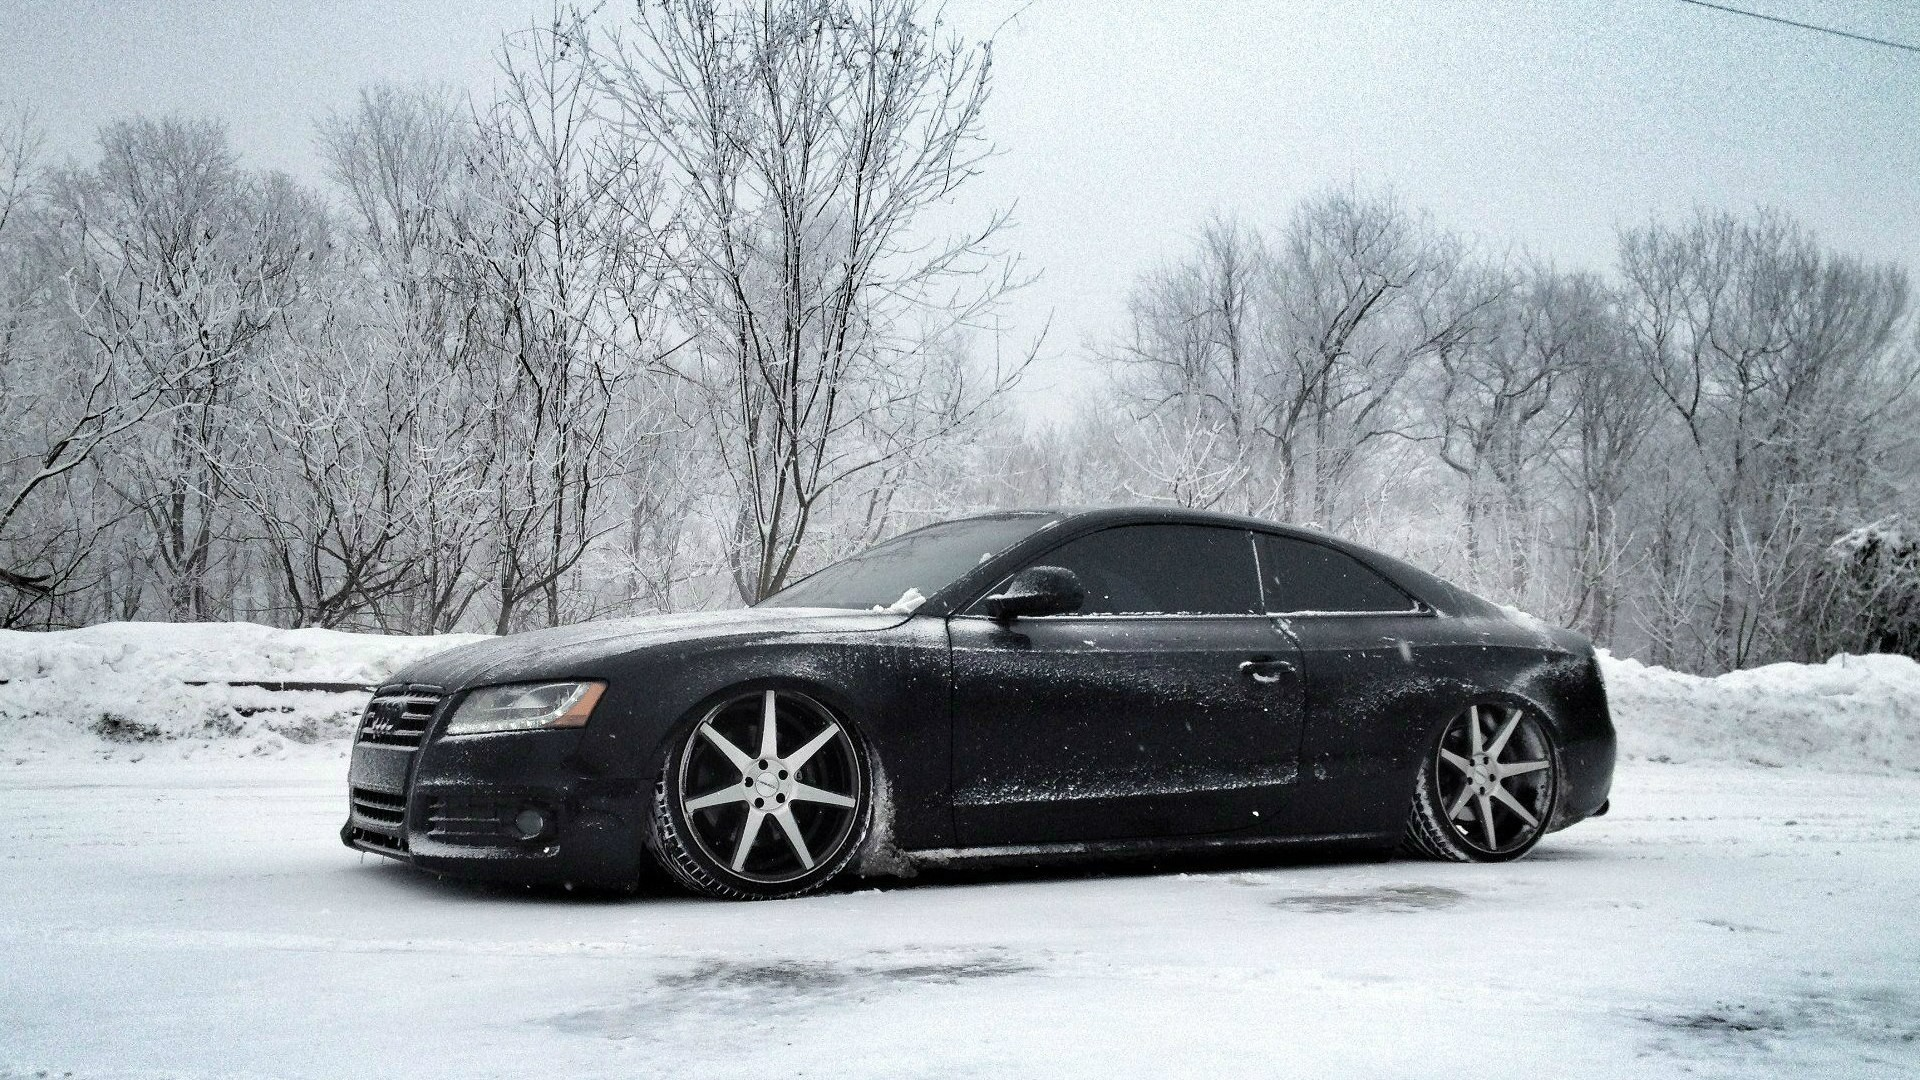 Audi In Snow Hd Cars 4k Wallpapers Images Backgrounds